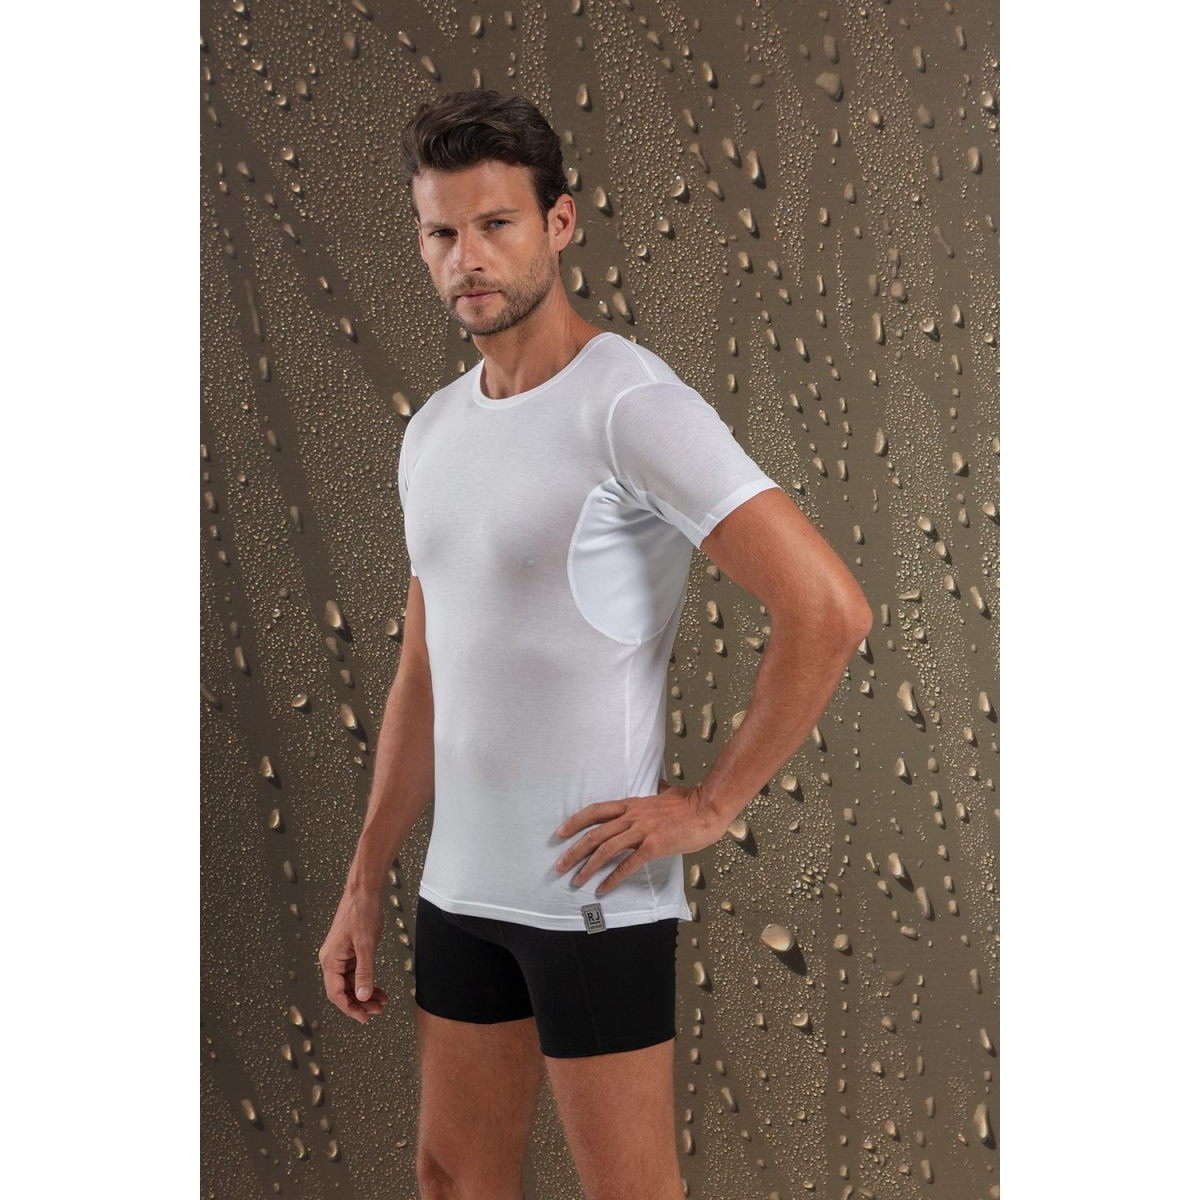 helsinki sweatproof rj bodywear t-shirt wit